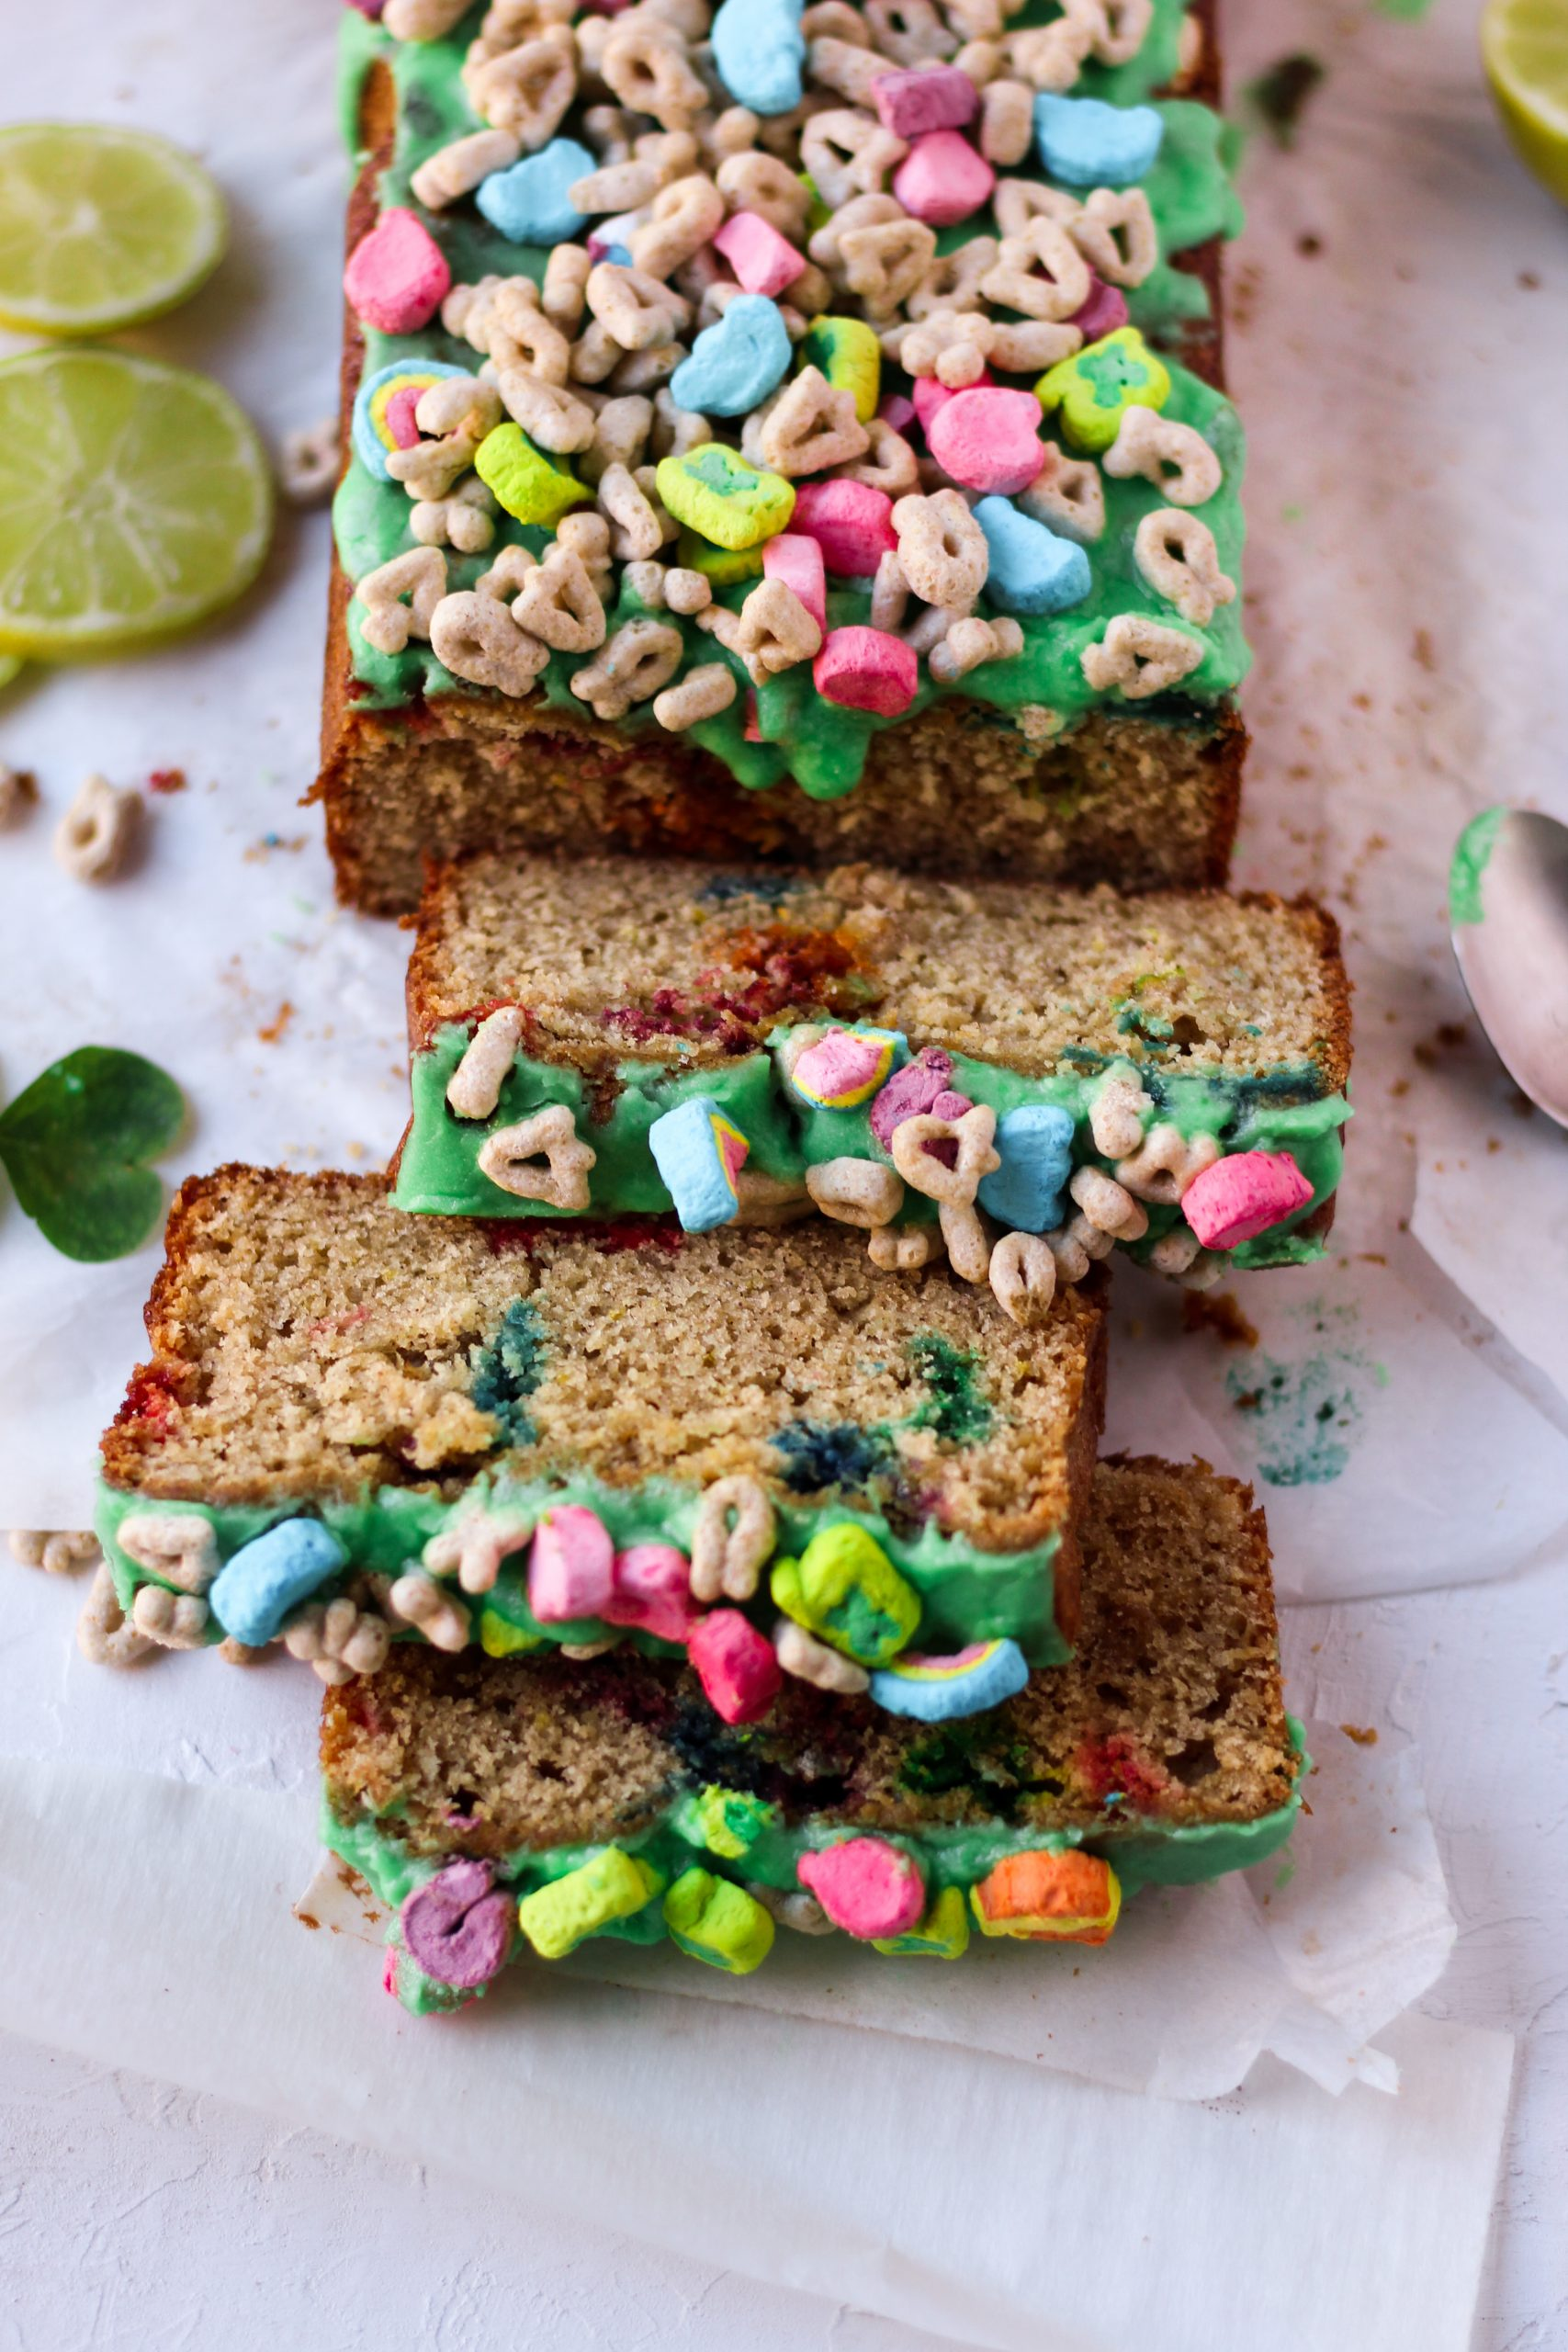 lucky charms loaf cake, made with lime, Irish whiskey, perfect for St. Patrick's day, with green glaze